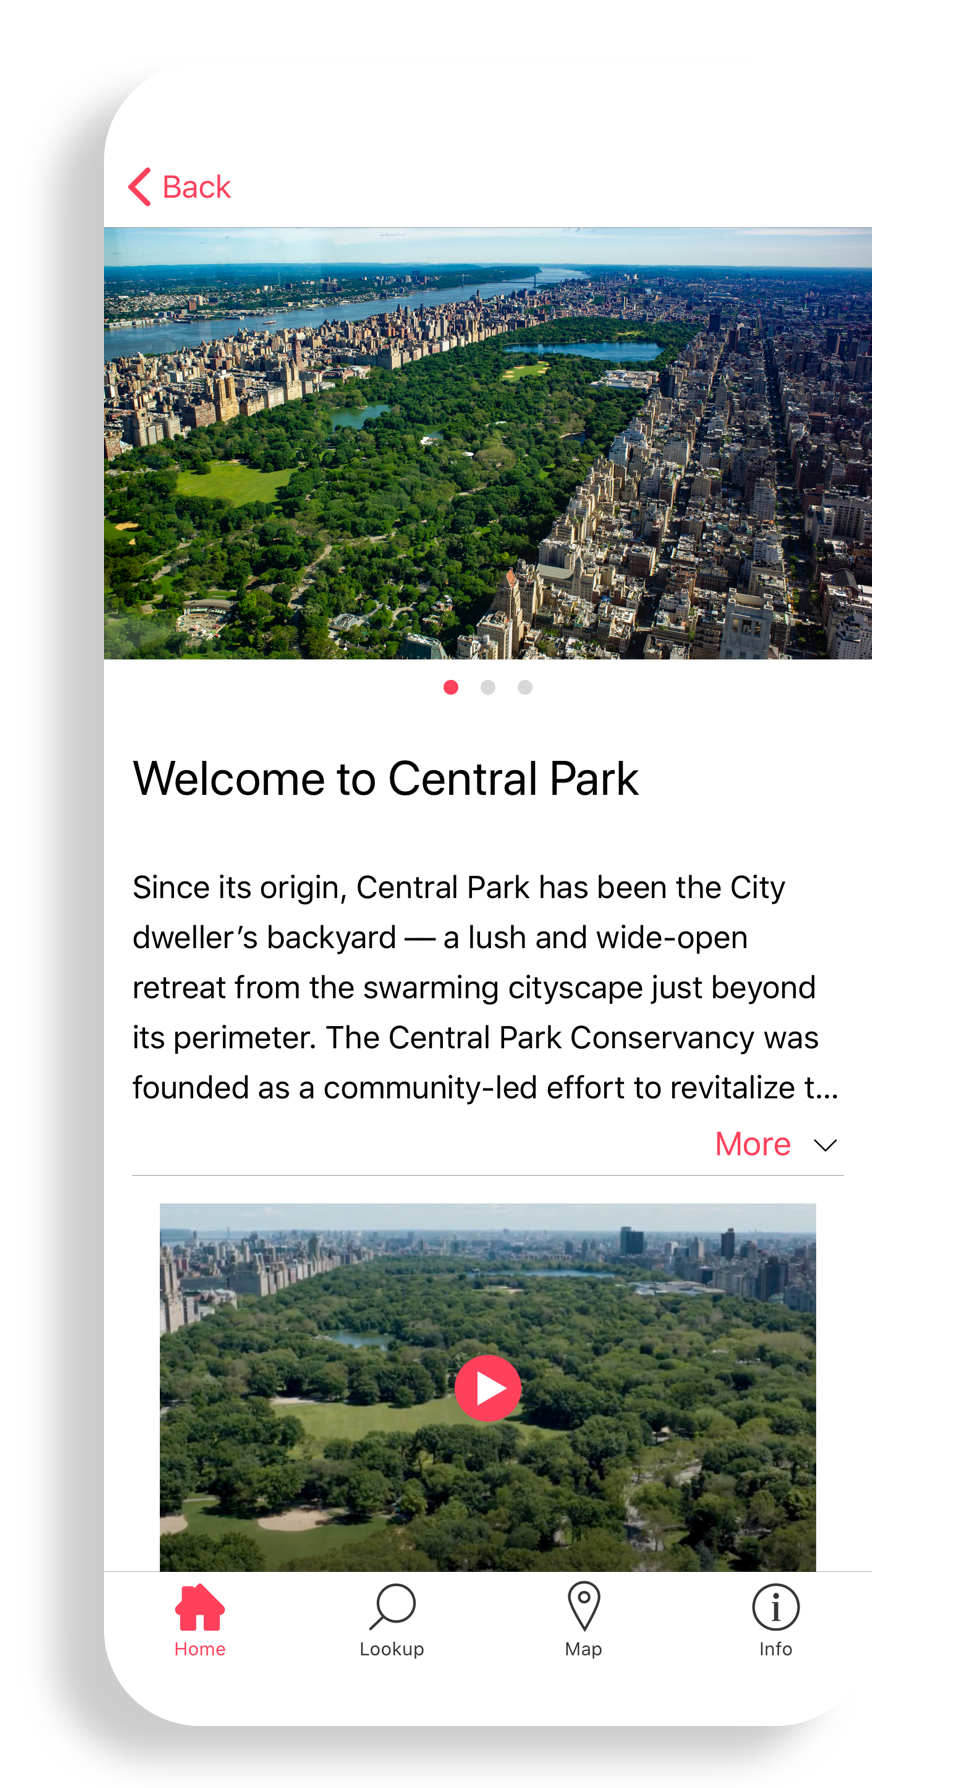 Welcome to Central Park